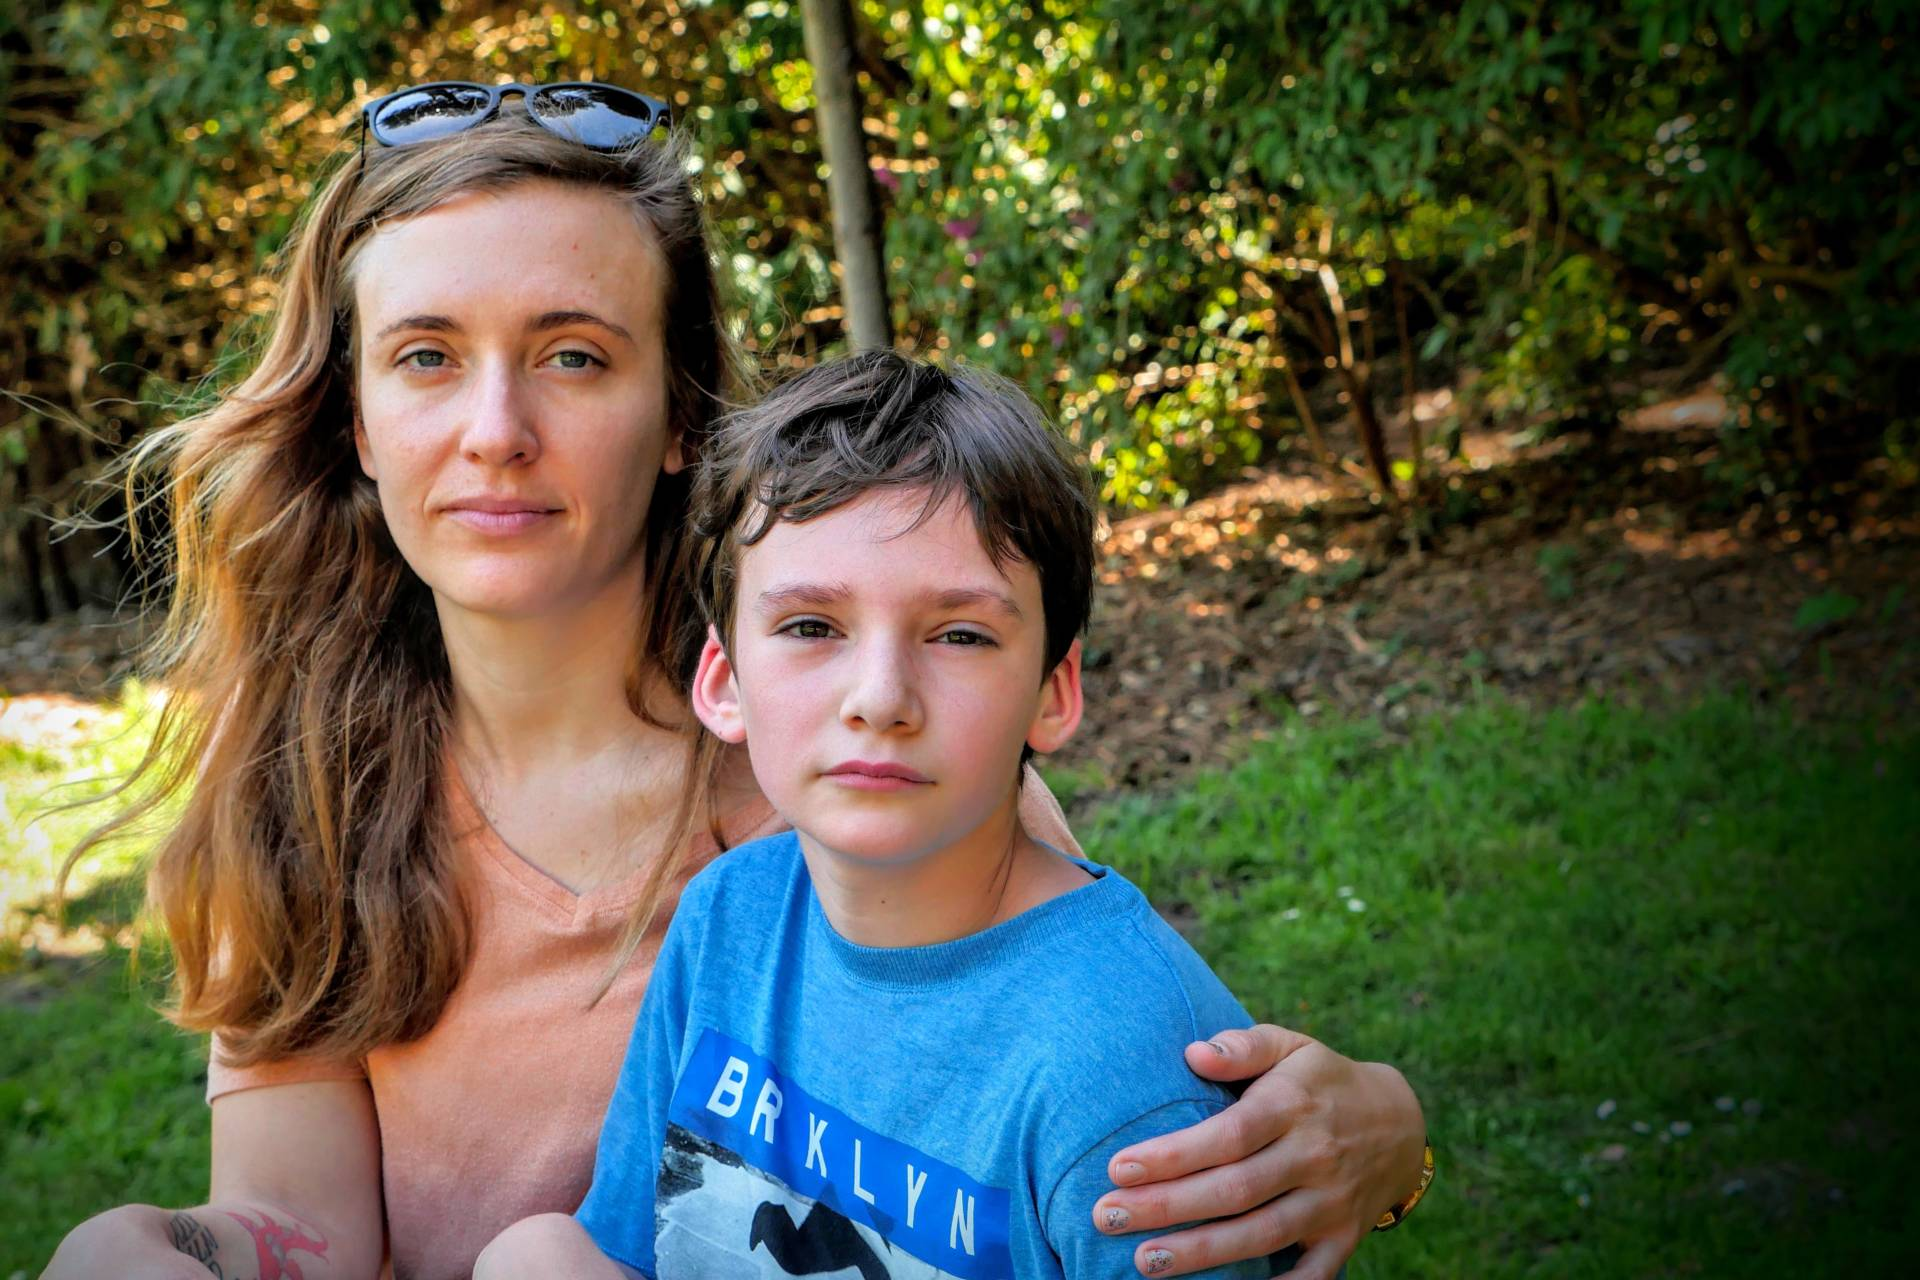 Natalie Dunnege and her son, Strazh.